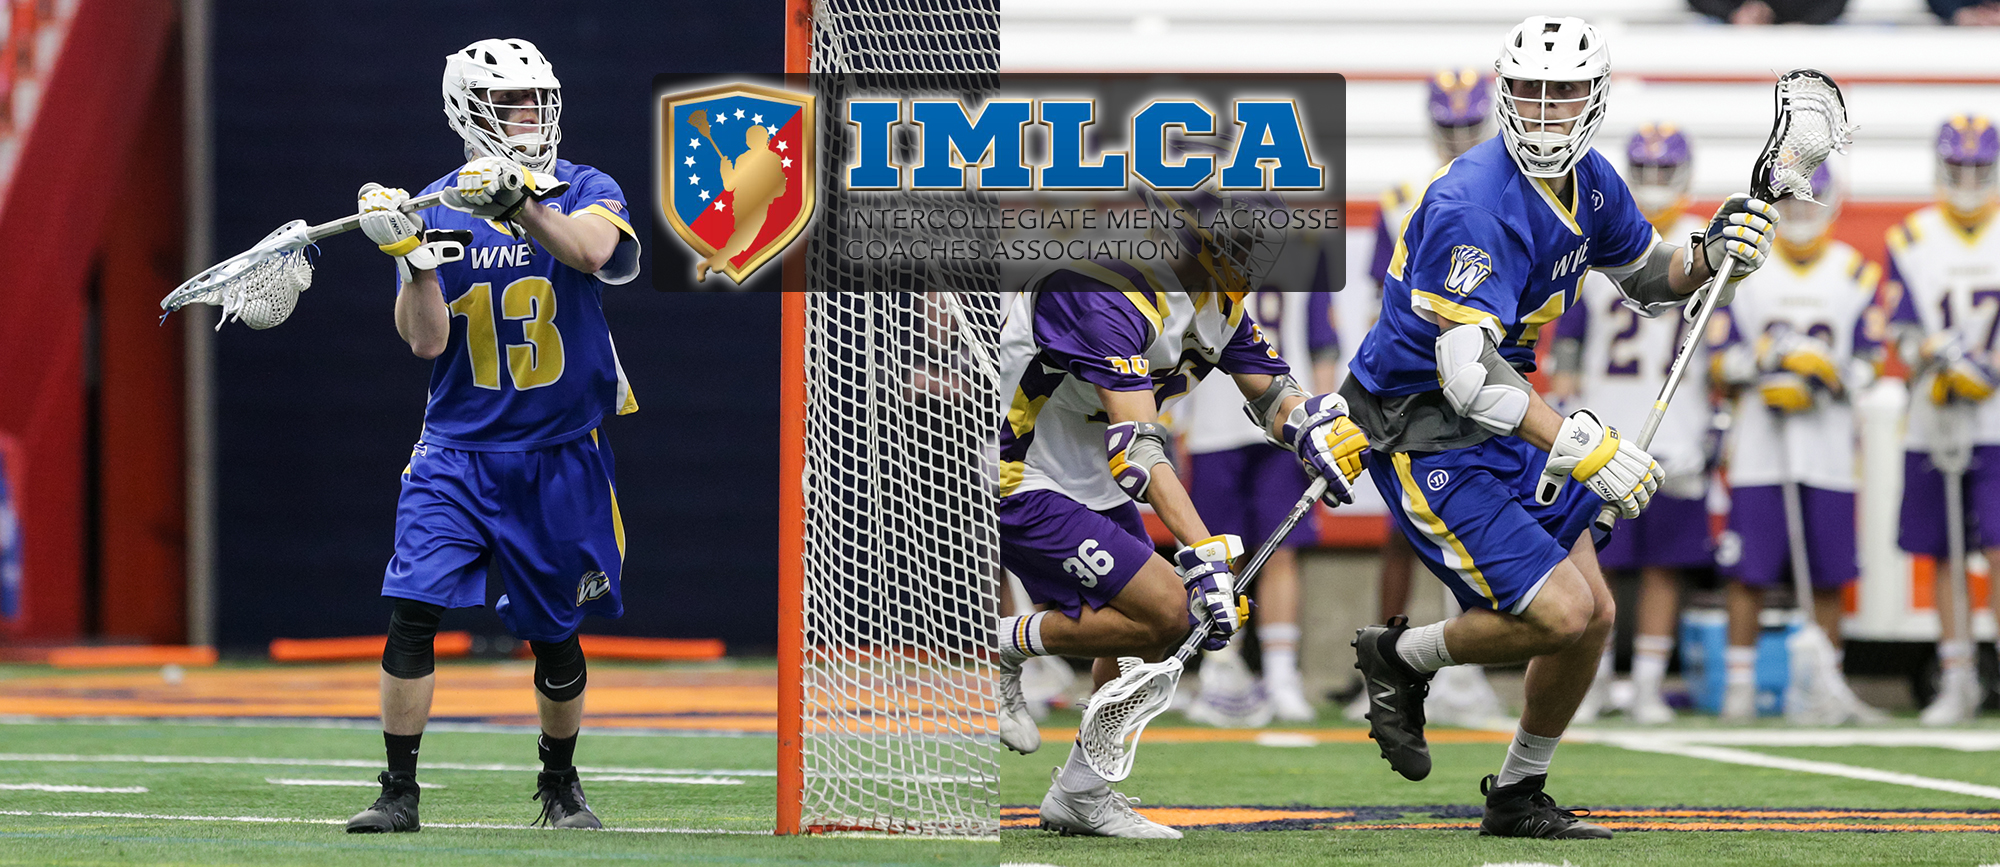 Kerr & Gamba Receive IMLCA All-Northeast Region Honorable Mention Accolades